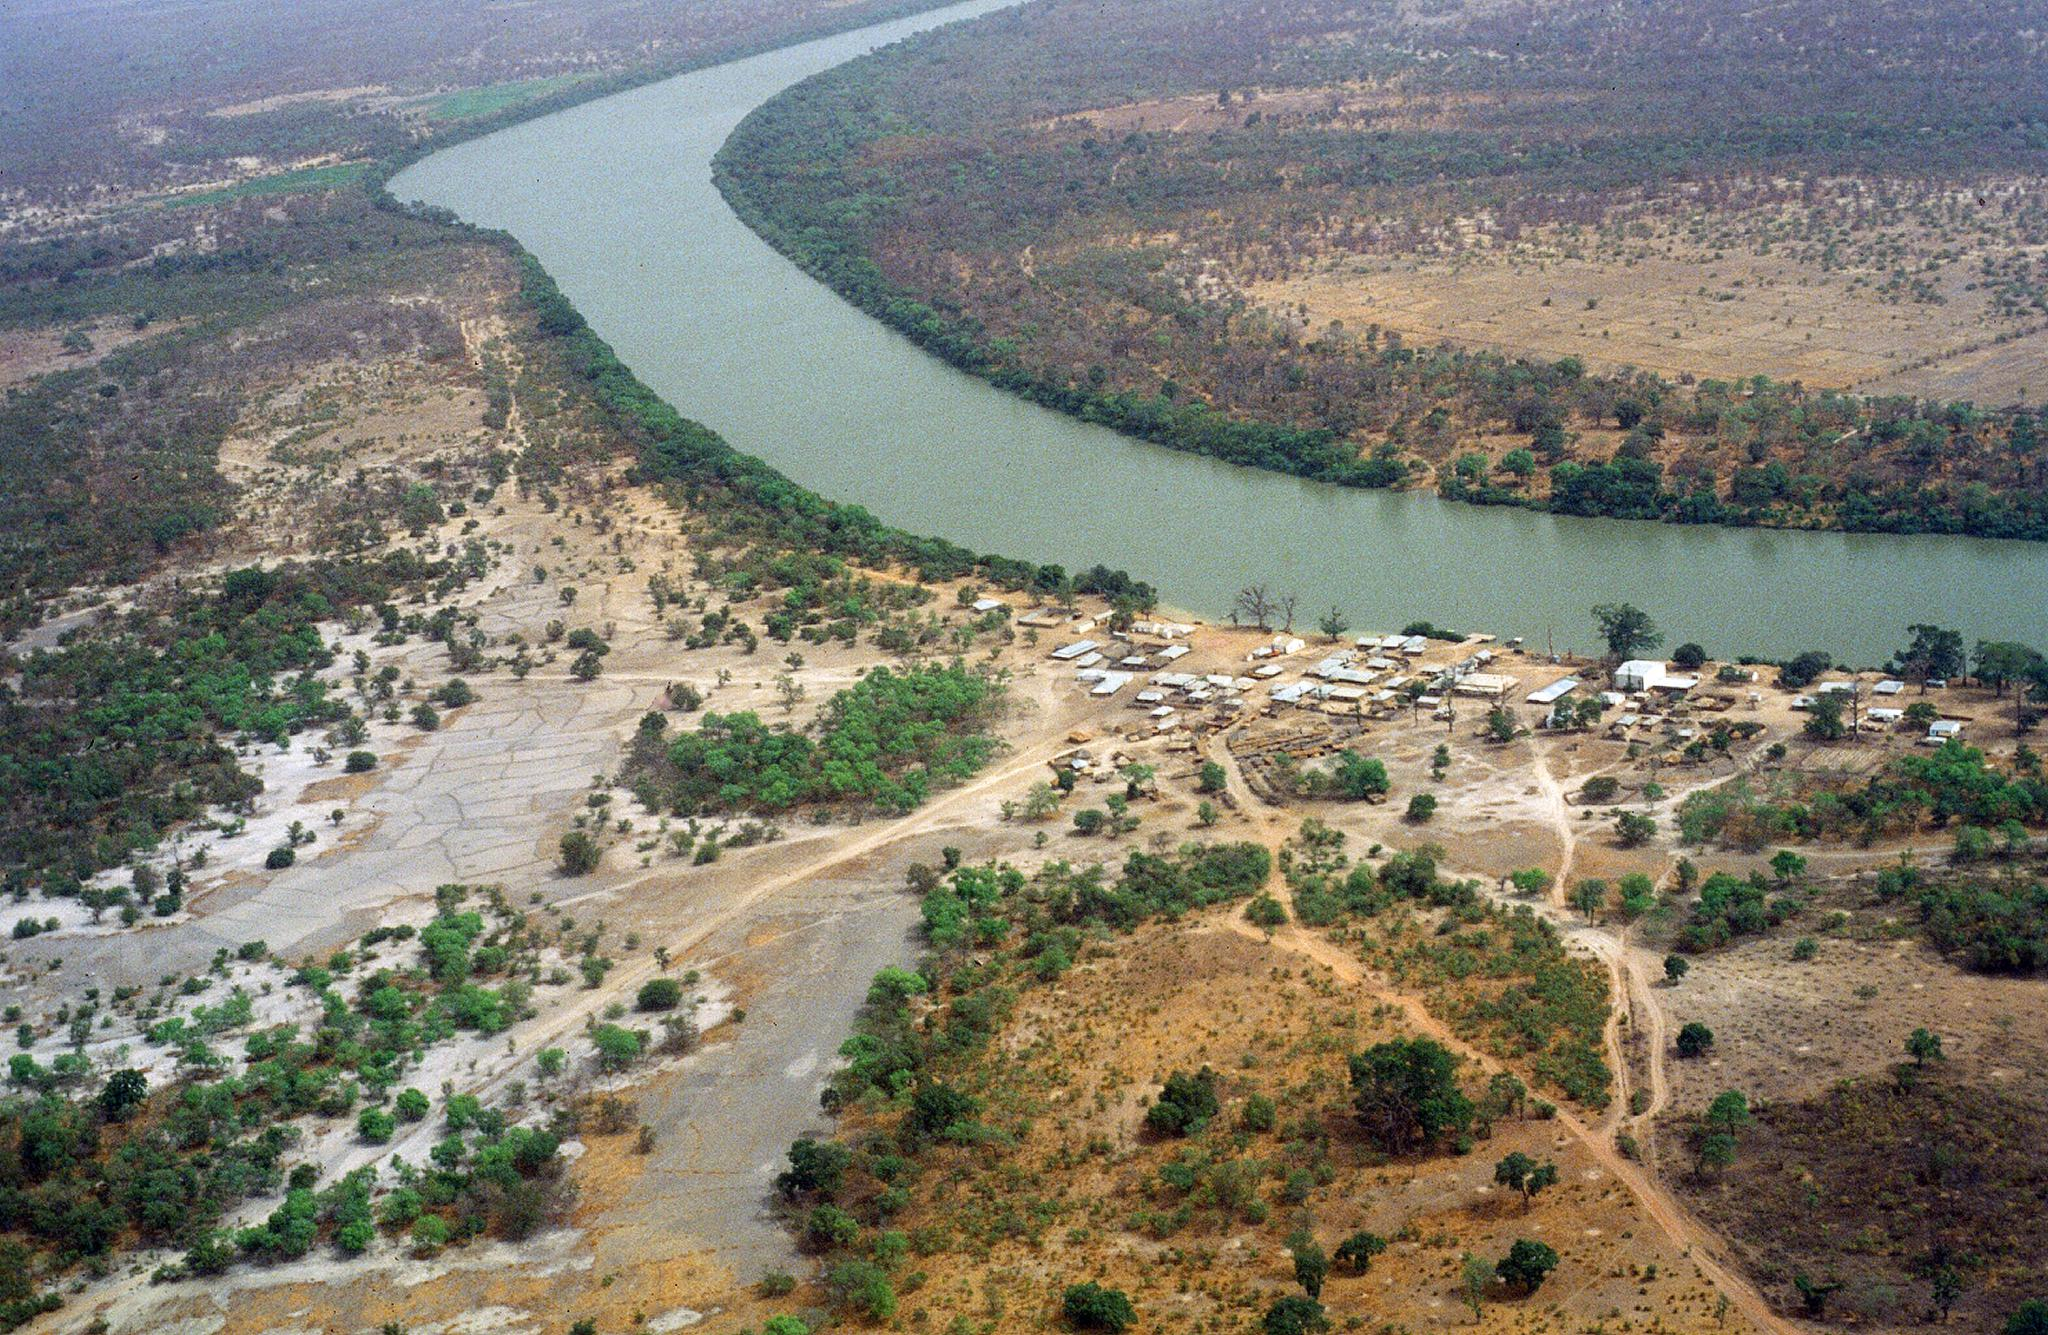 Aerial view of a village on the bank of the upper Gambia River ©Gray Tappan/USGS